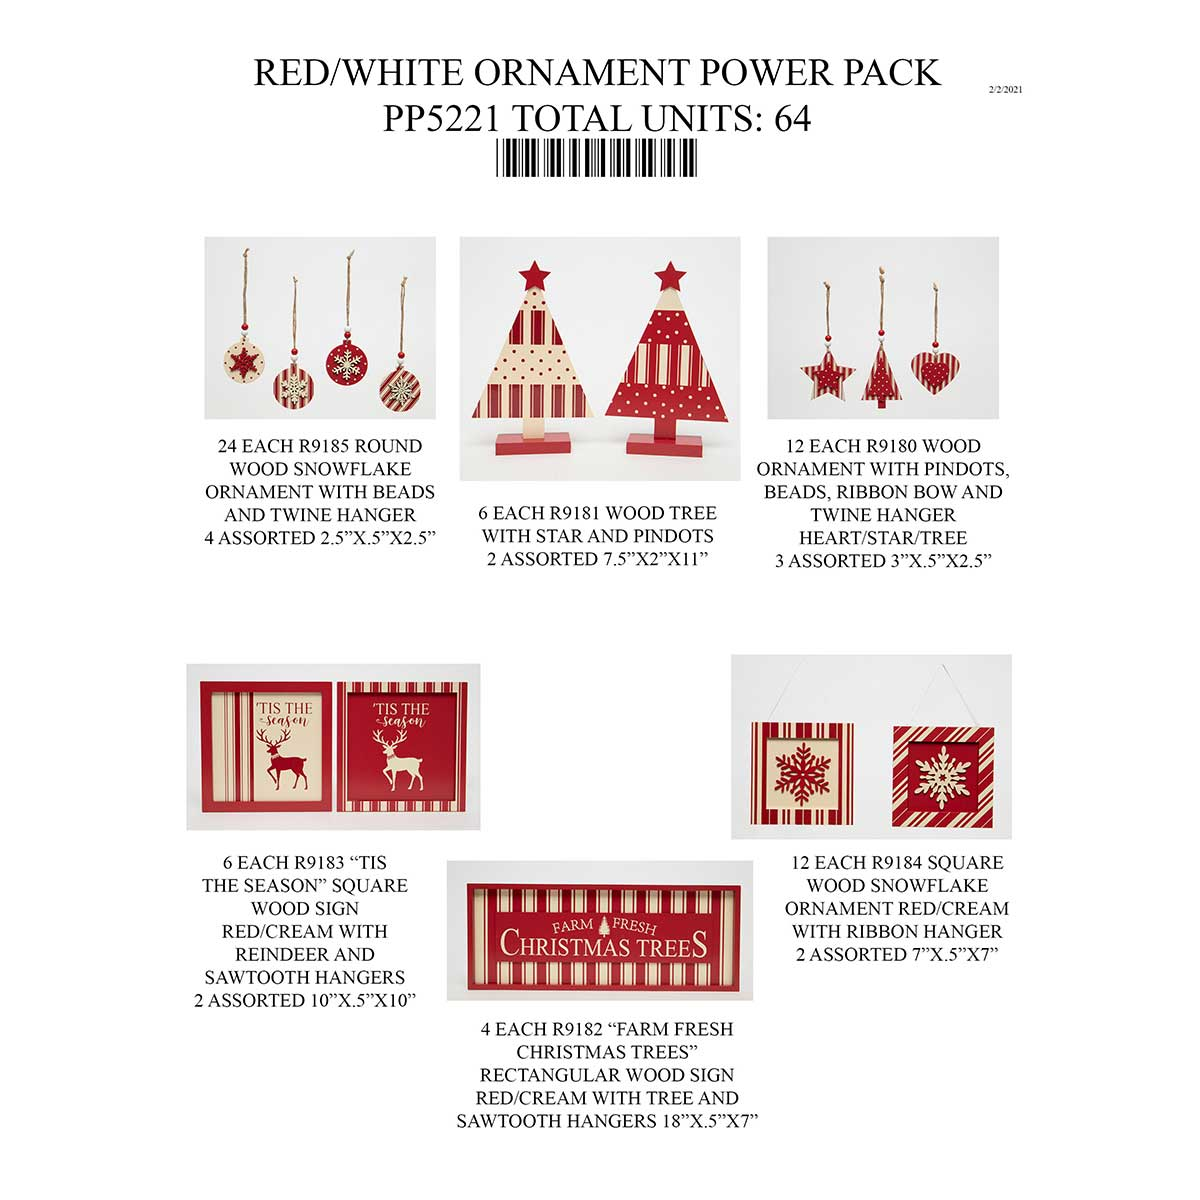 RED/CREAM TICKING ORNAMENT POWER PACK 64 UNITS PP5221